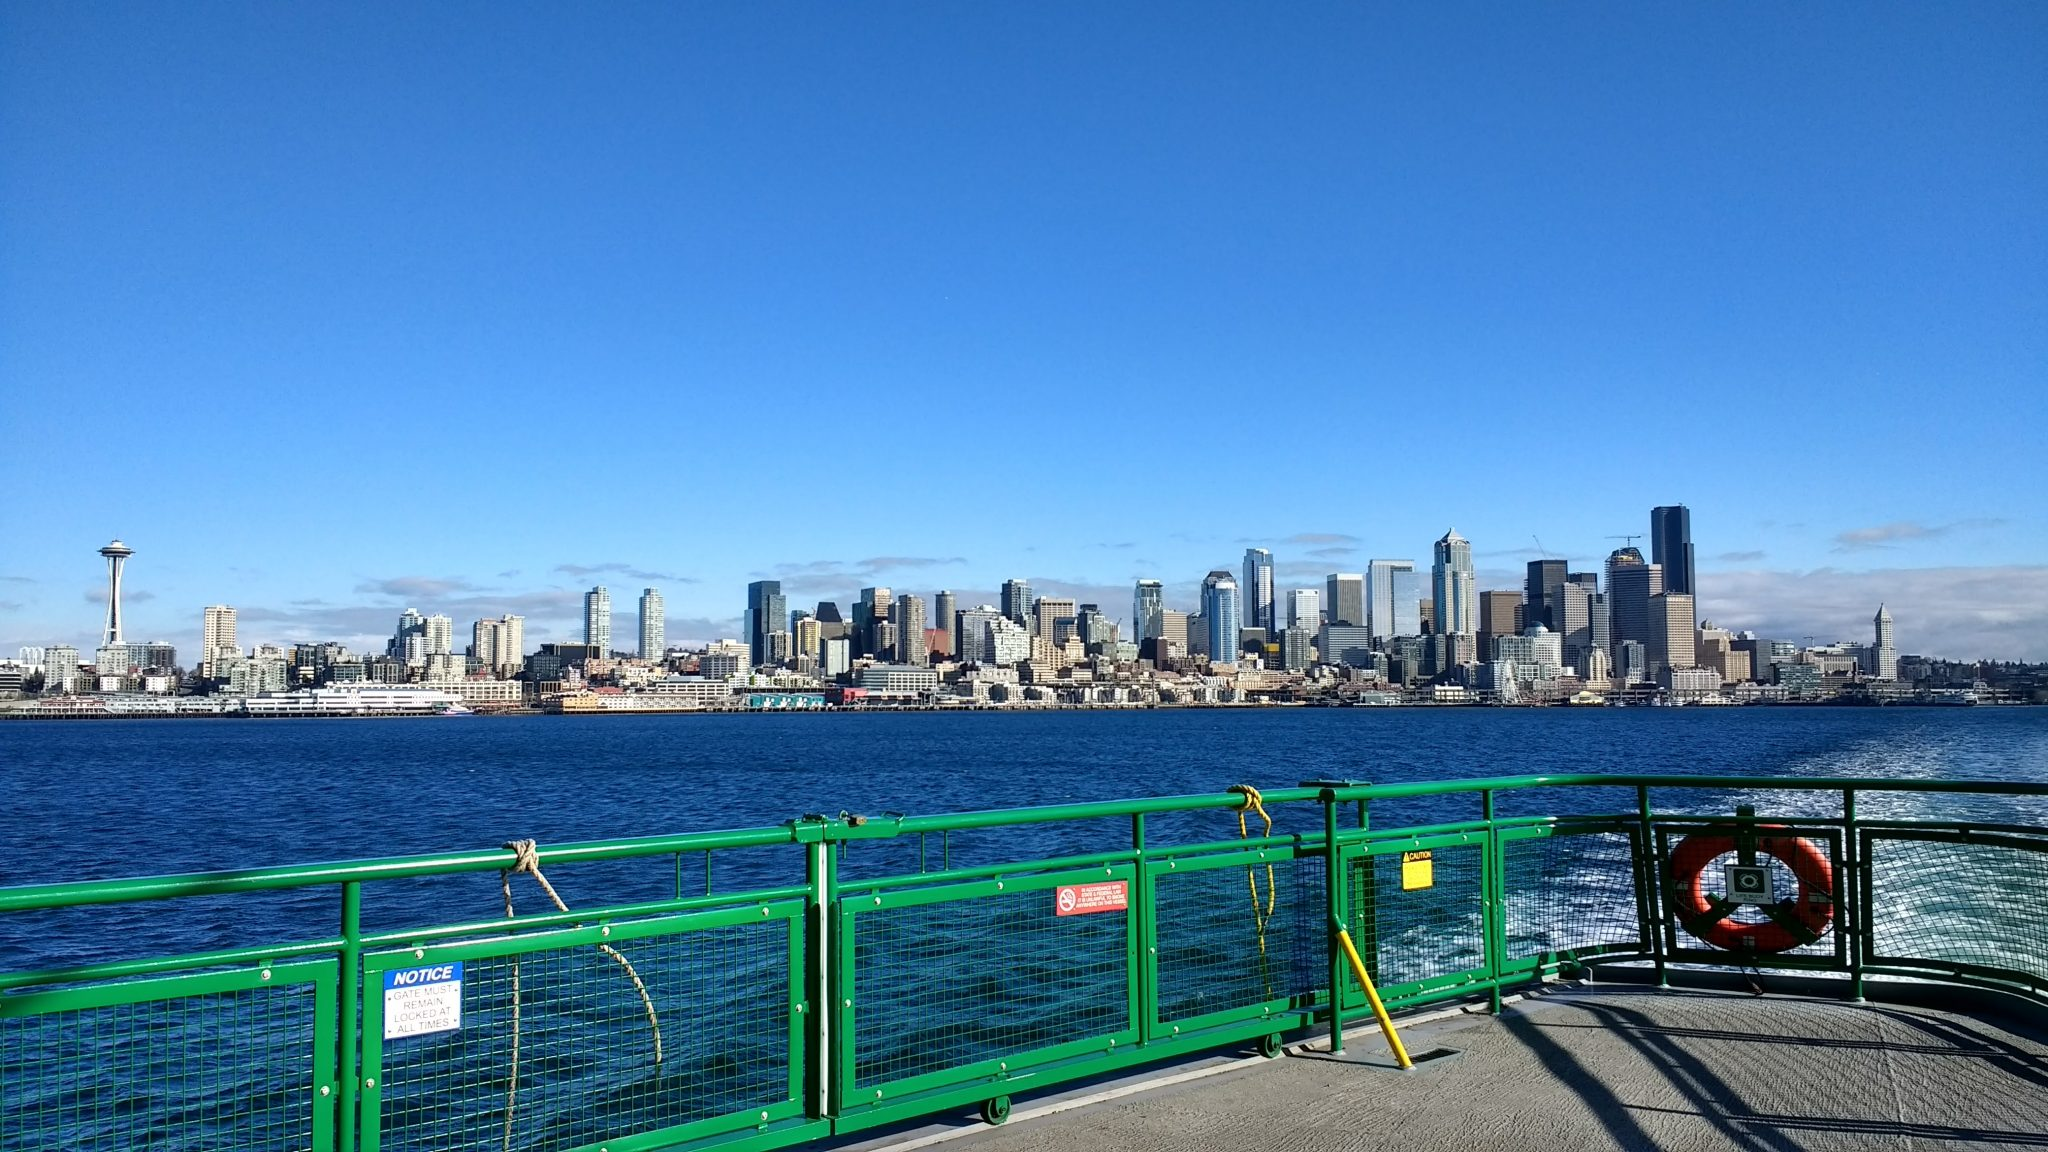 The Seattle city skyline from the ferry. The deck of the ferry is in the foreground. The ferry is a popular day trip from Seattle